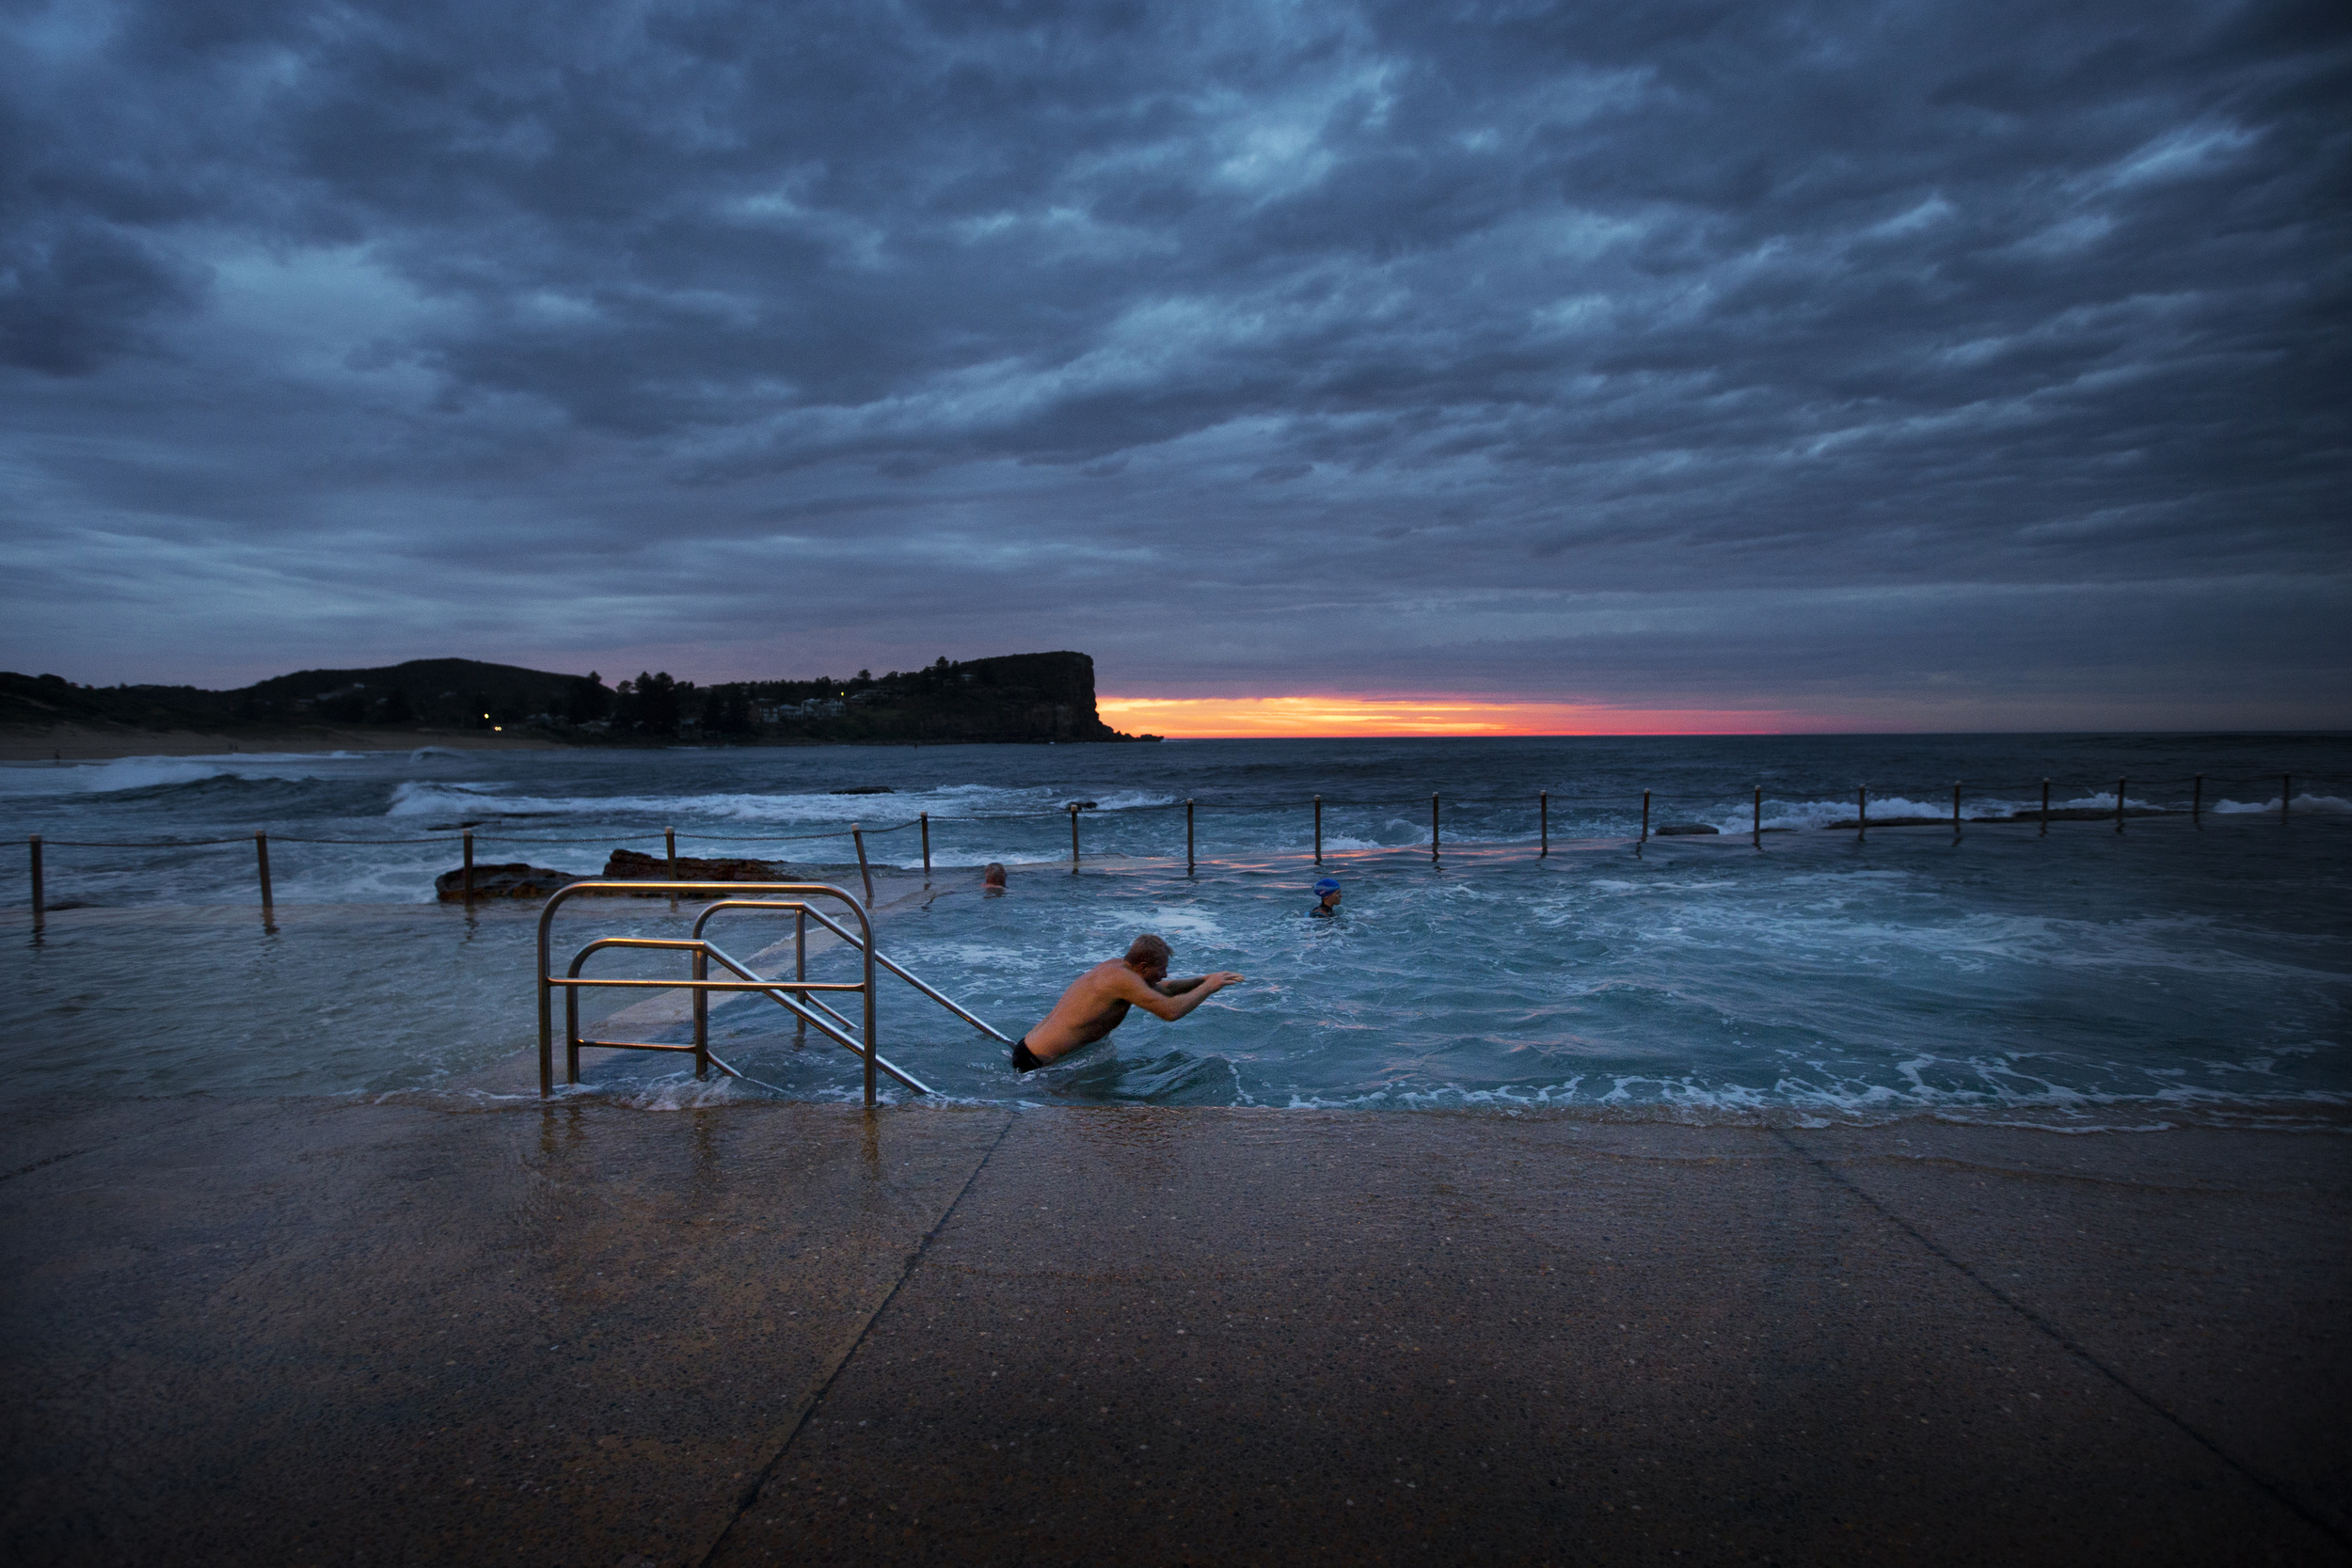 October brought the clocks forward and meant the early morning crew had to get started under the incandescent glow of street lamps rather than the solar version they had been used to. Early morning swimmers at Avalon Beach ocean pool test their perseverance against the cold, dark and sometimes wet conditions.